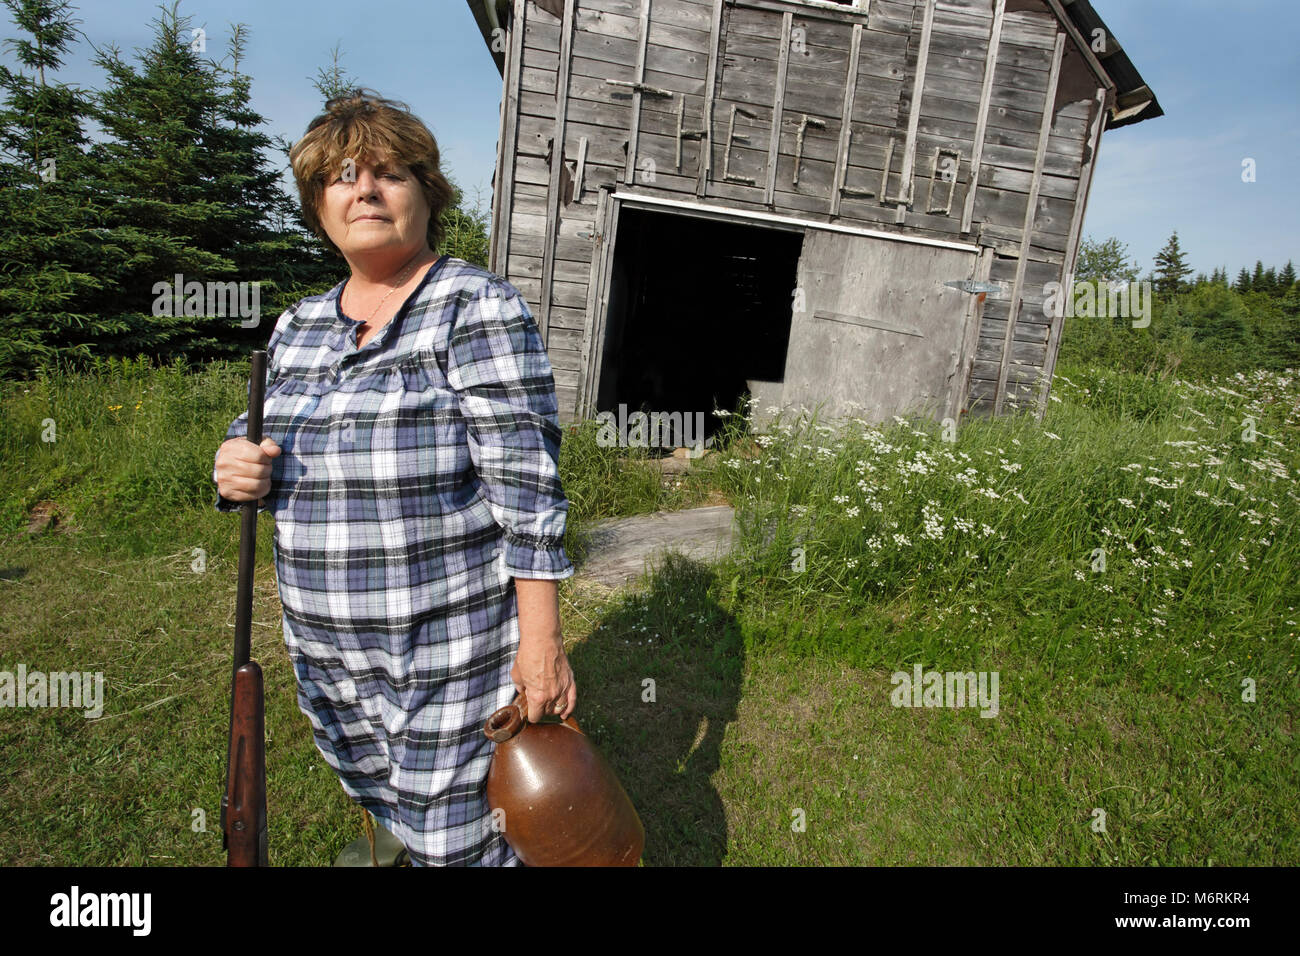 Moonshine Mary stands proud protecting her property and moonshine with a rather large rifle. - Stock Image